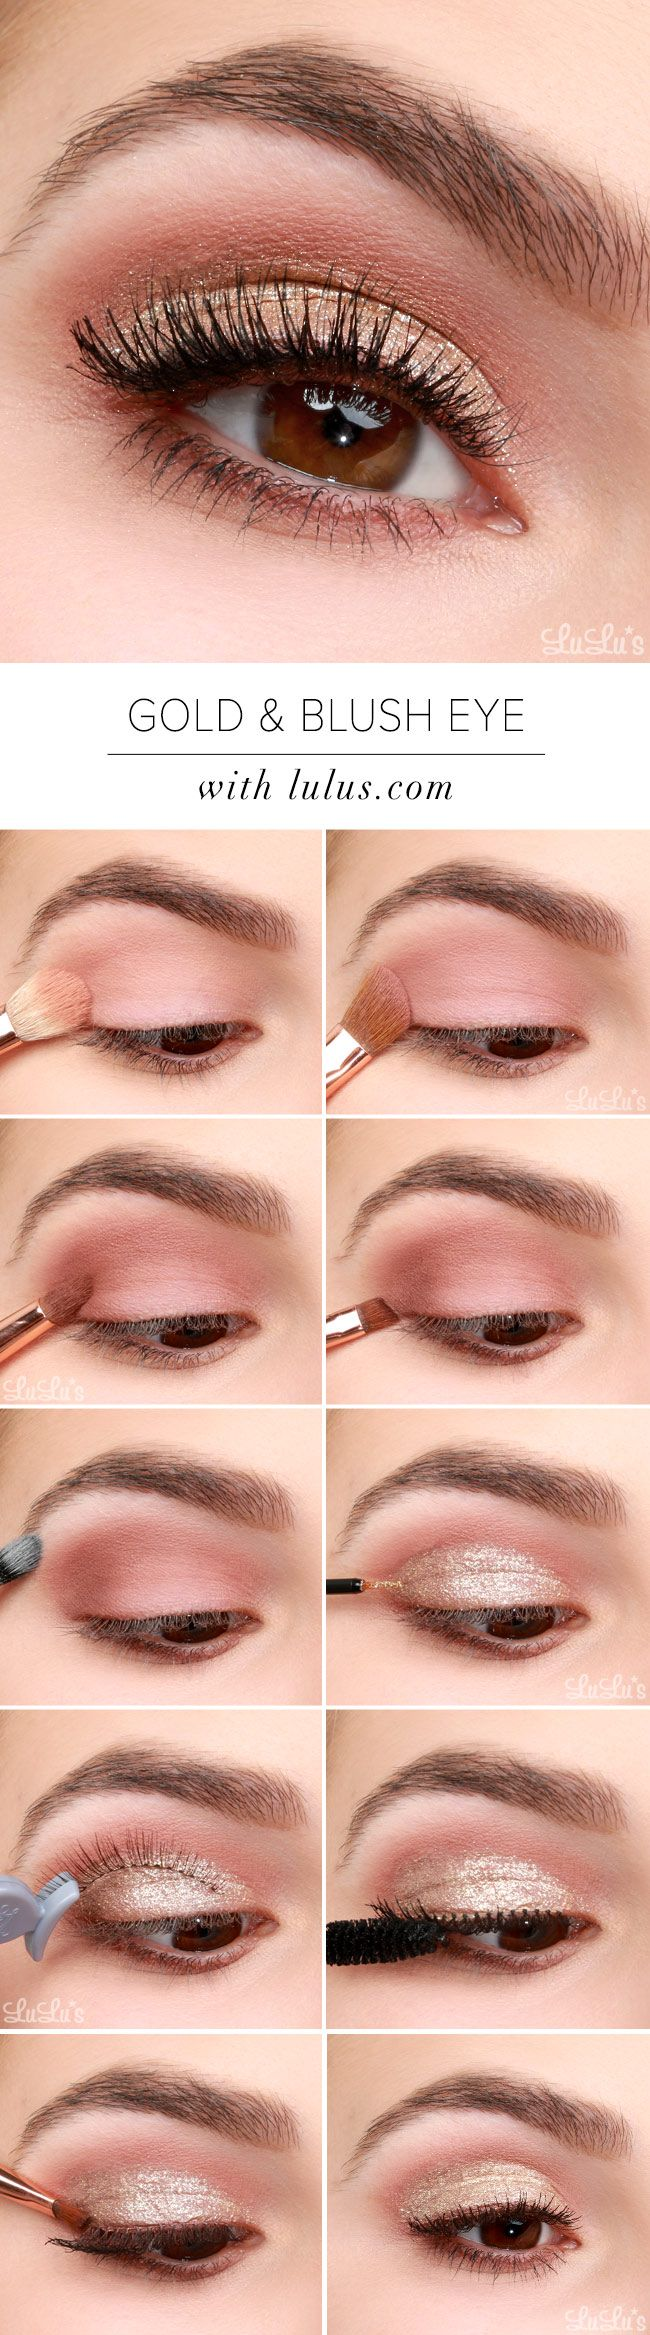 Lulus how to gold and blush valentines day eye makeup tutorial lulus how to gold and blush valentines day eye makeup tutorial at baditri Images